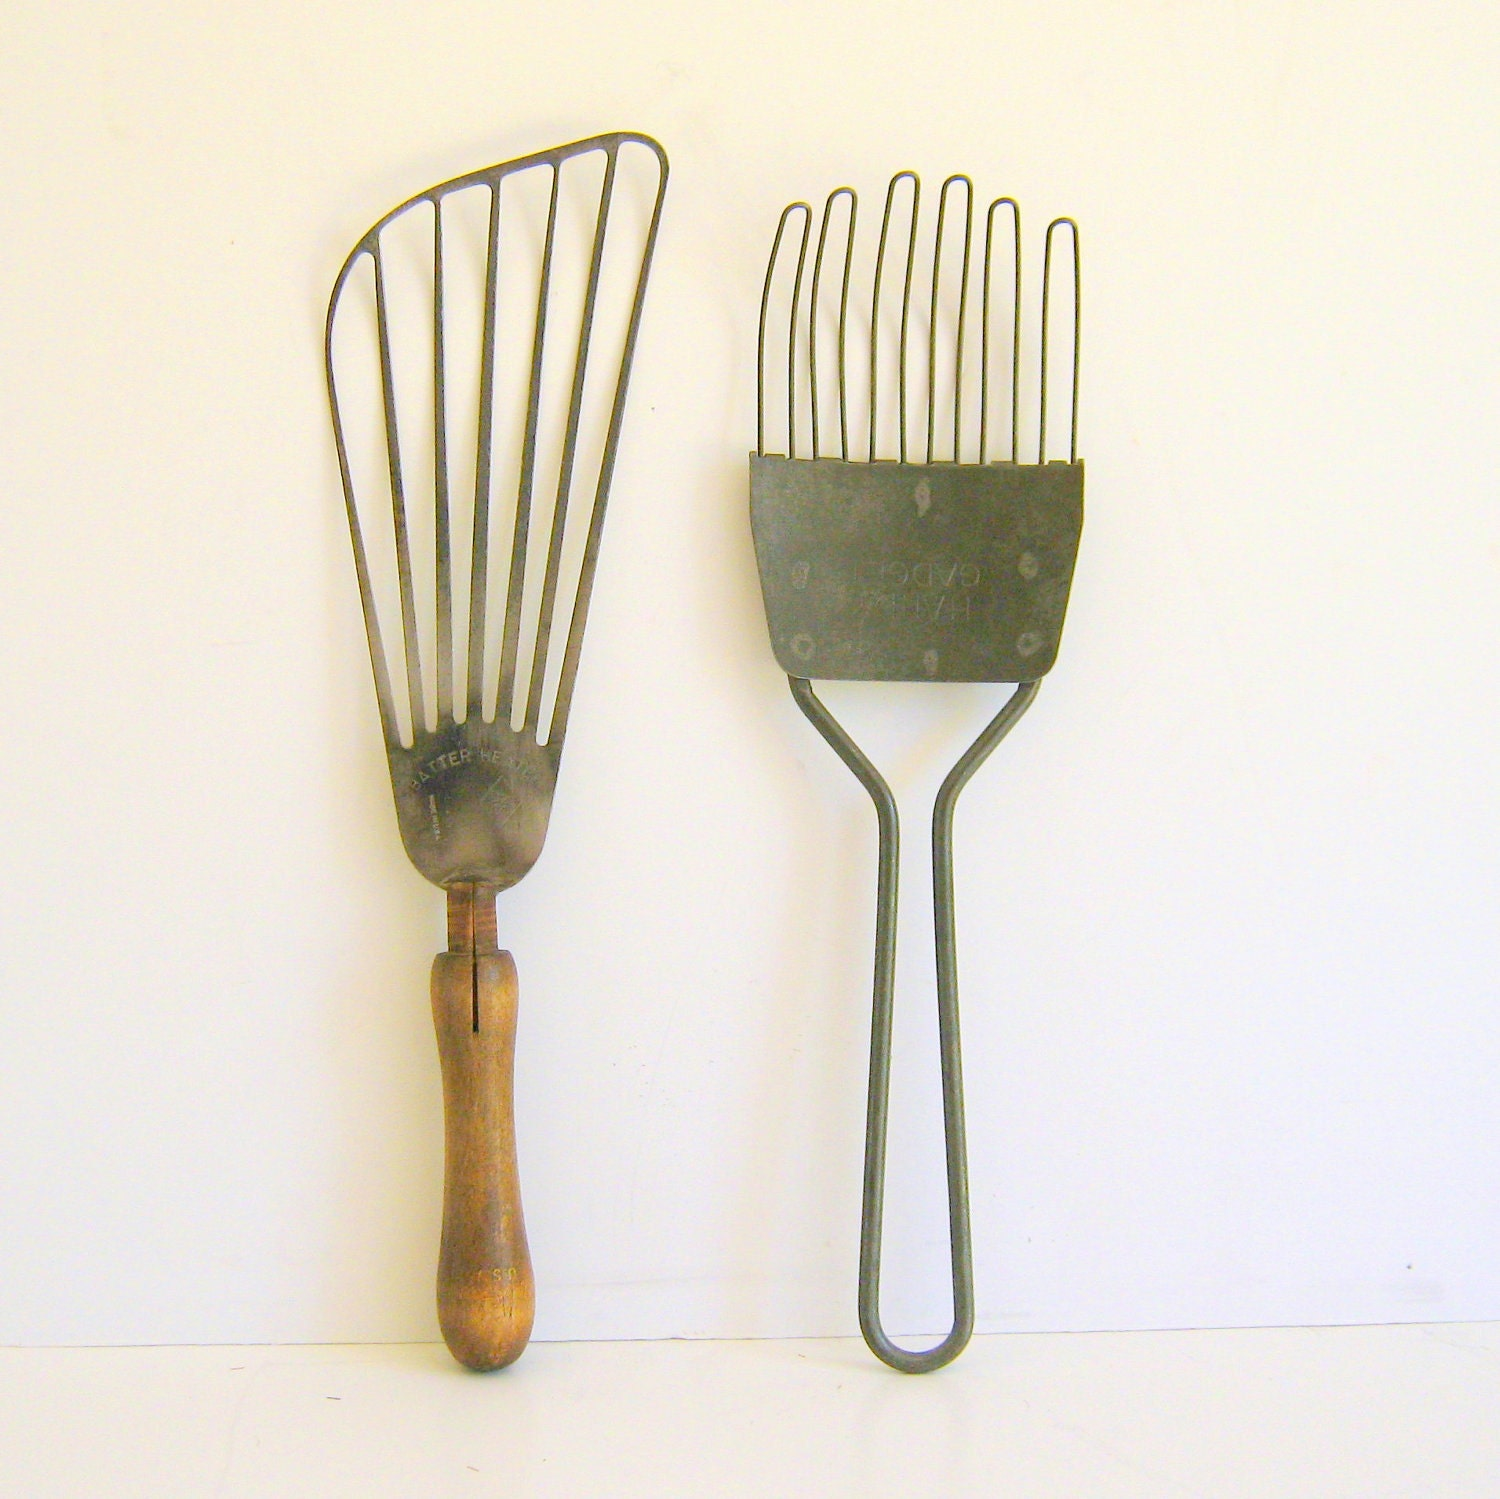 Vintage Kitchen Utensils By RollingHillsVintage On Etsy